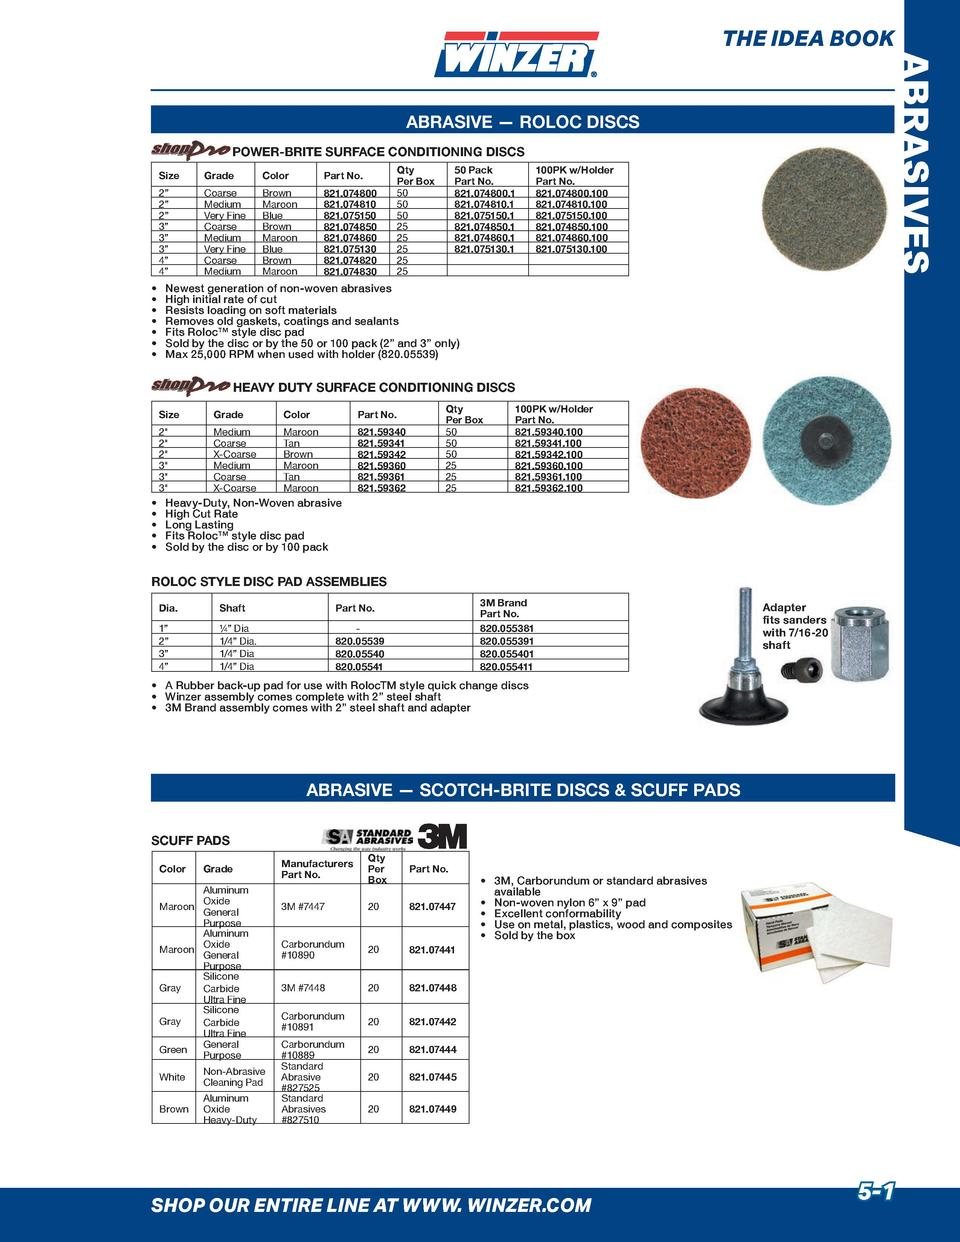 THE IDEA BOOK  ABRASIVES  ABRASIVE     ROLOC DISCS POWER-BRITE SURFACE CONDITIONING DISCS Size  Grade  Color  Part No.  2 ...